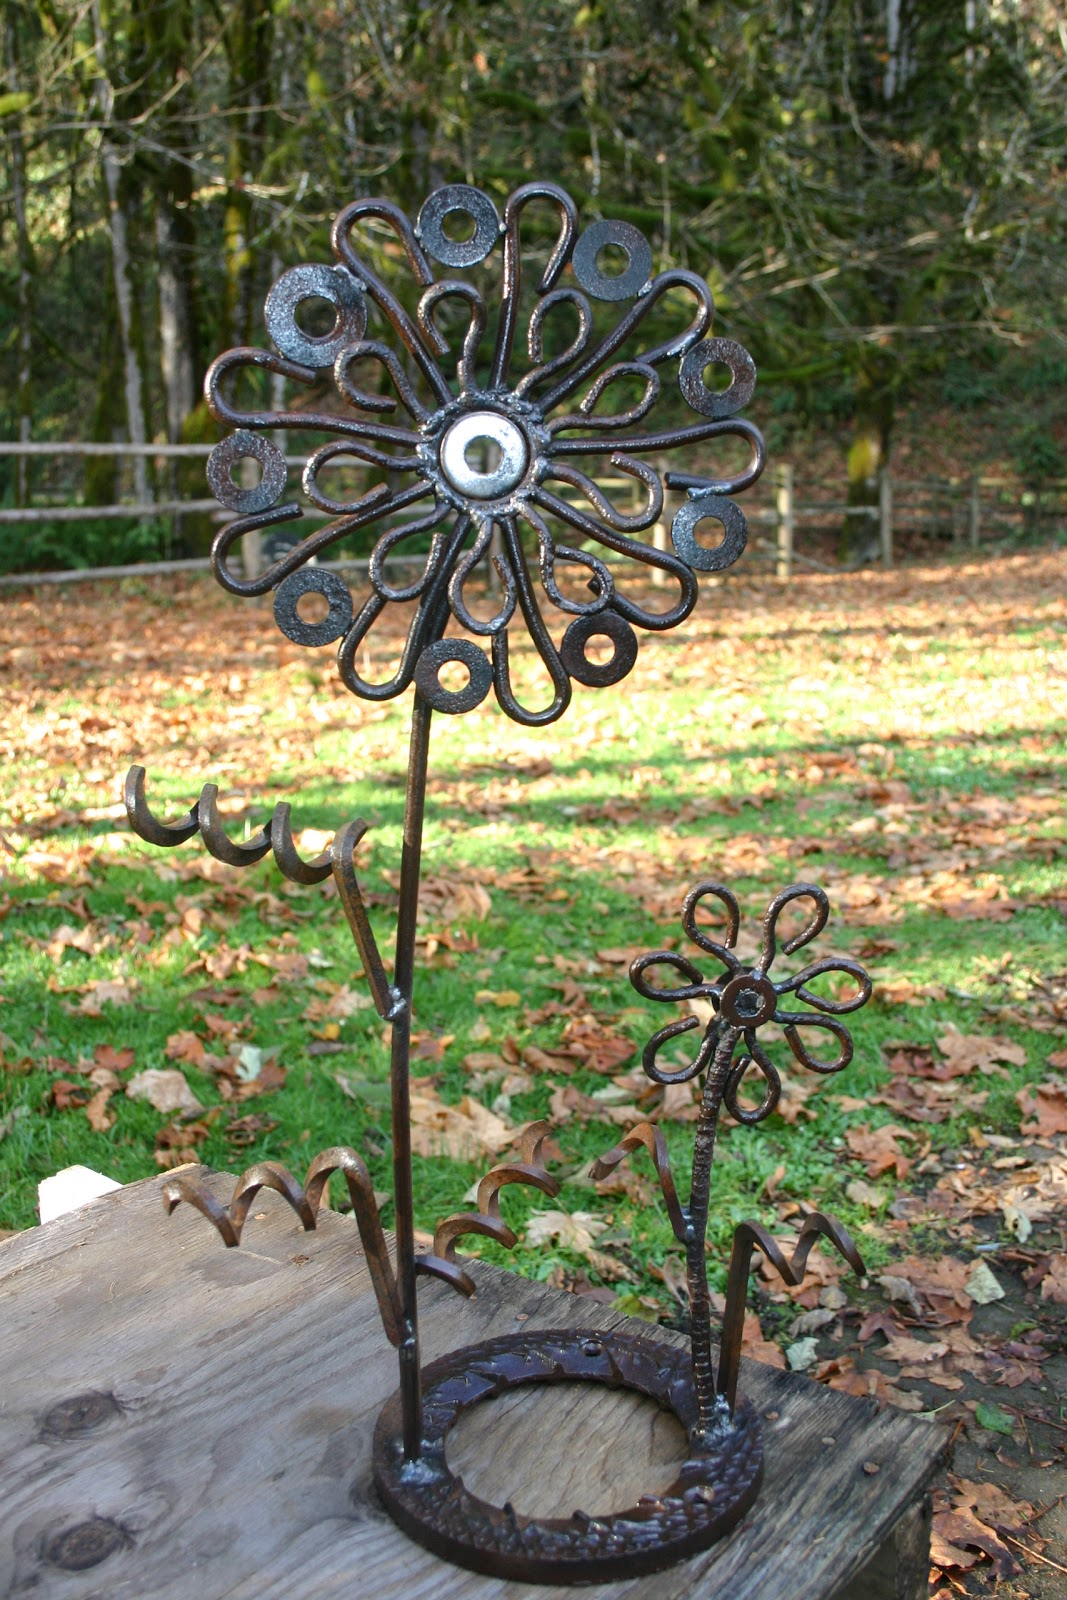 Art For The Garden: Kathi's Garden Art Rust-n-Stuff: Also Showing At The